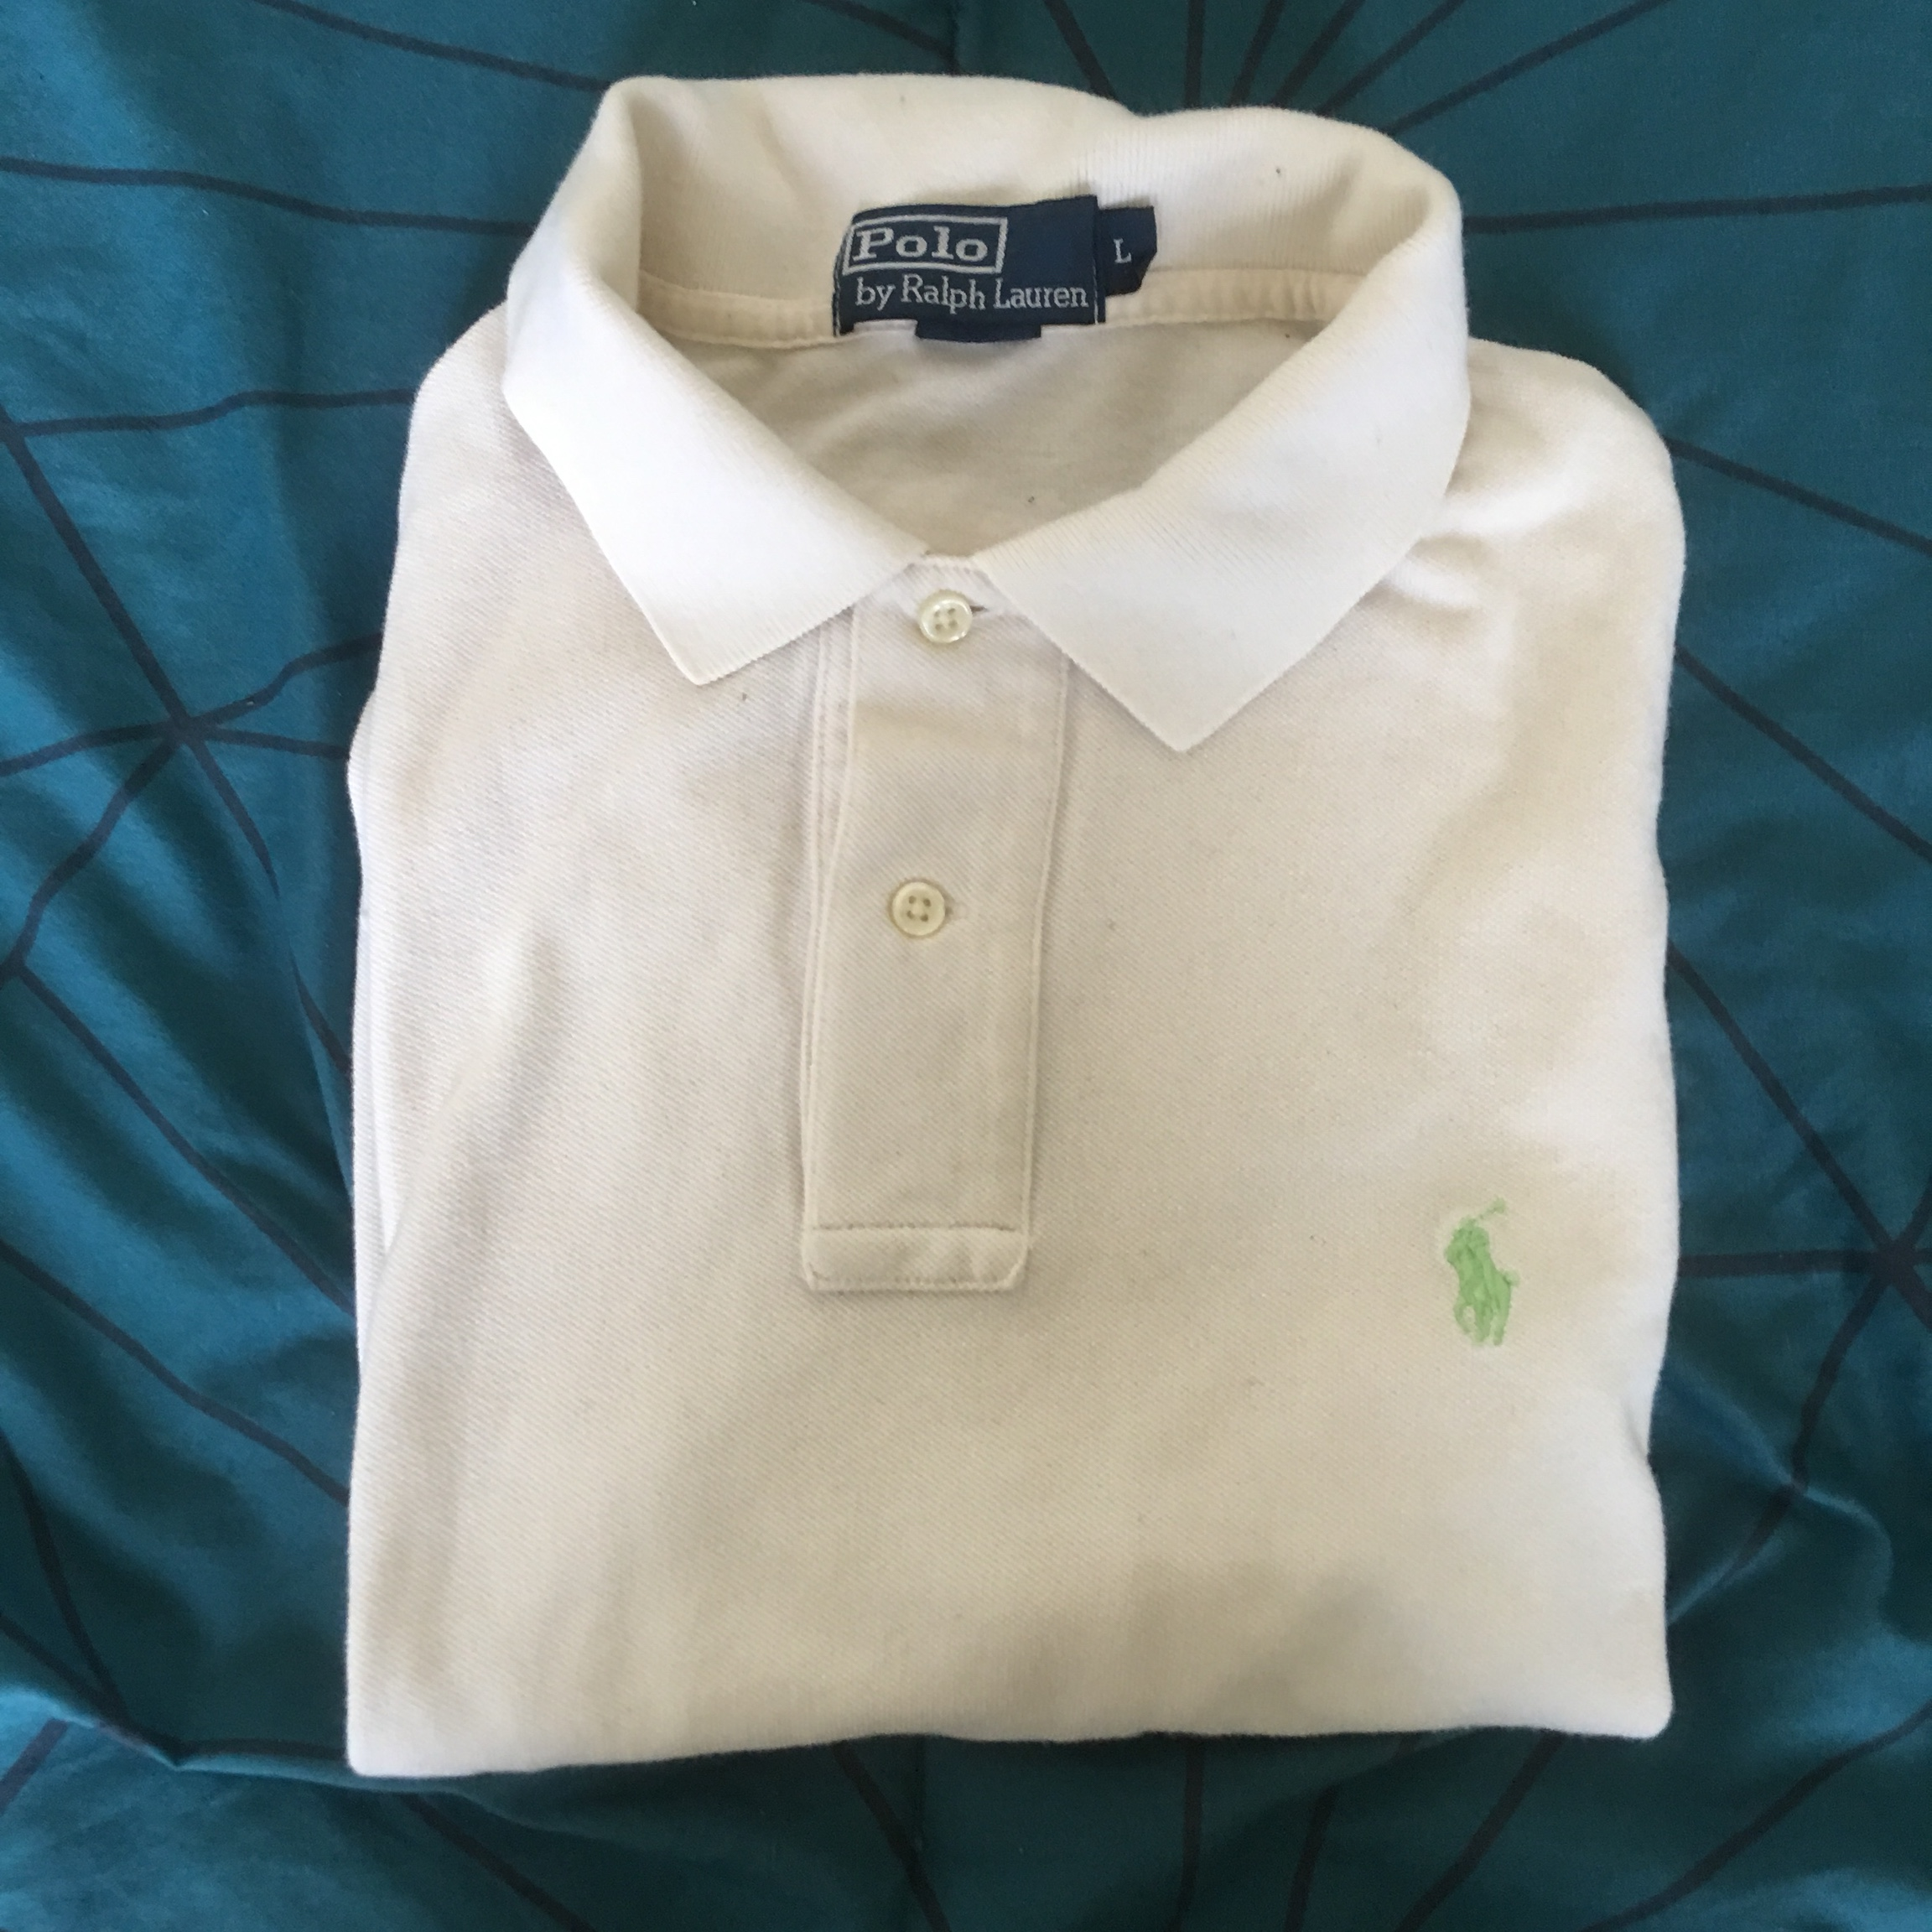 Polo Shirts Tan With Worn Ralph Lauren Depop Hardly N0ny8wmPvO